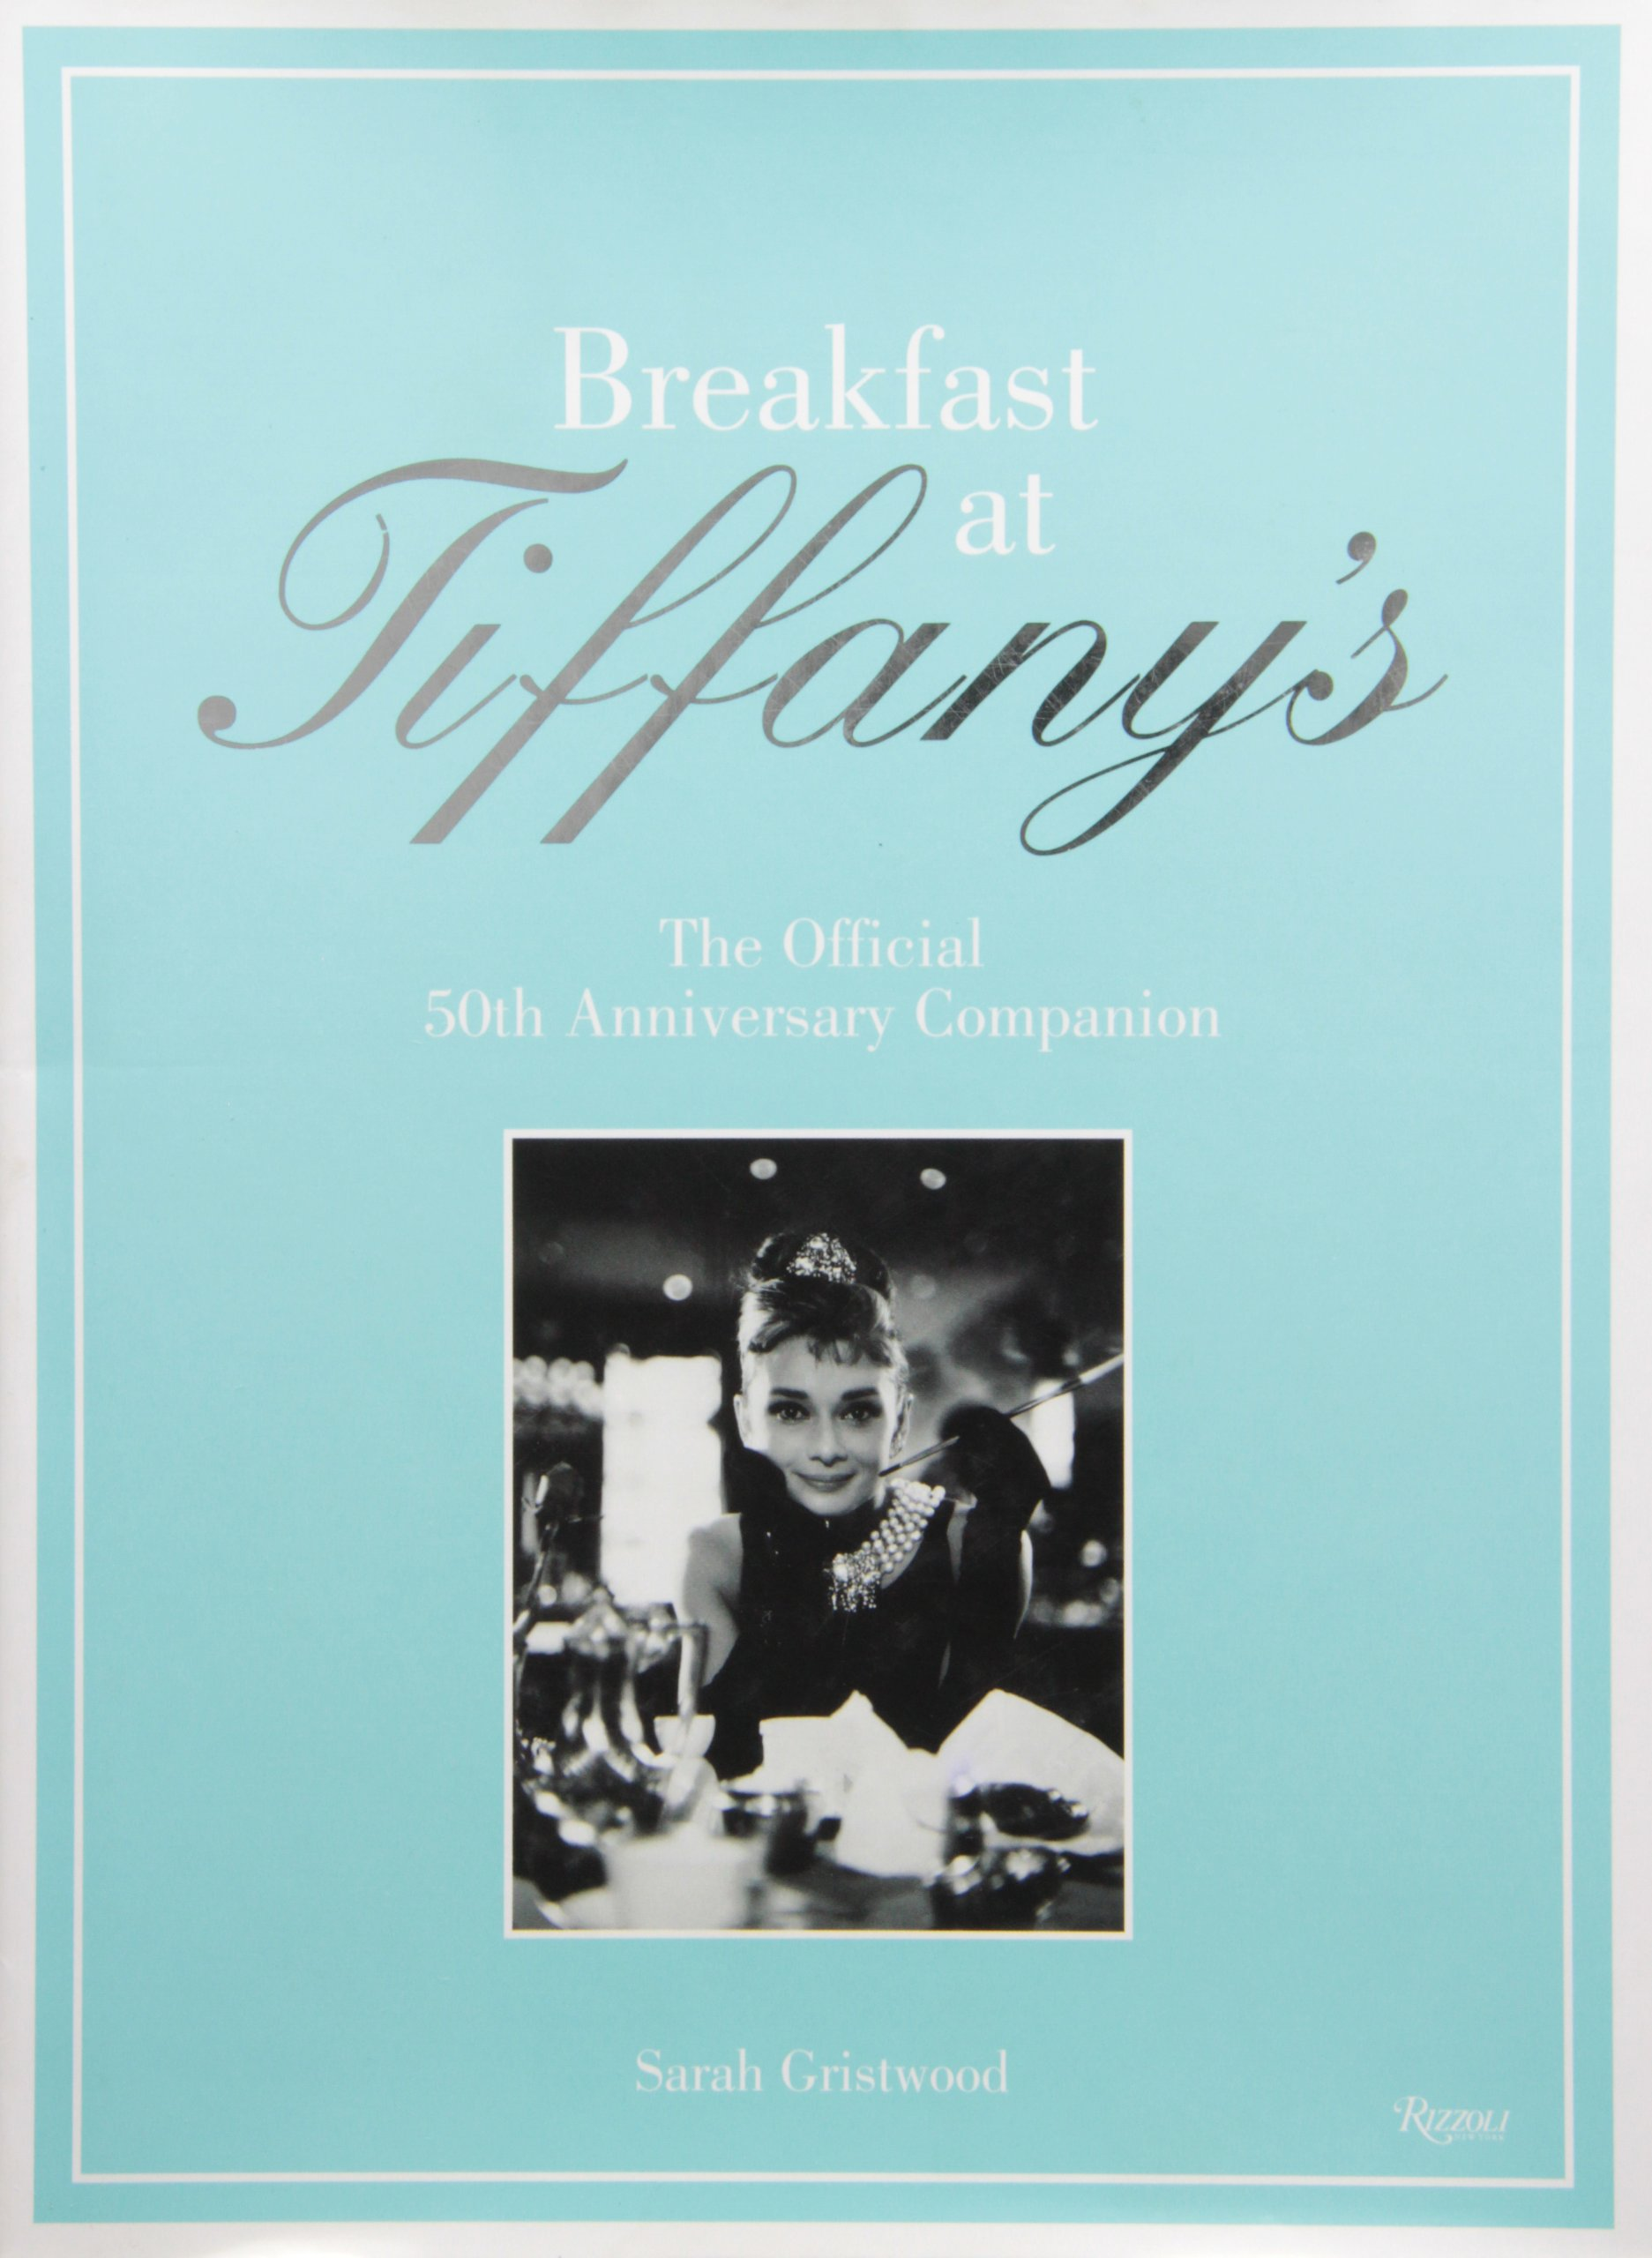 Breakfast at Tiffanys: The Official 50th Anniversary Companion: Amazon.es: Sarah Gristwood: Libros